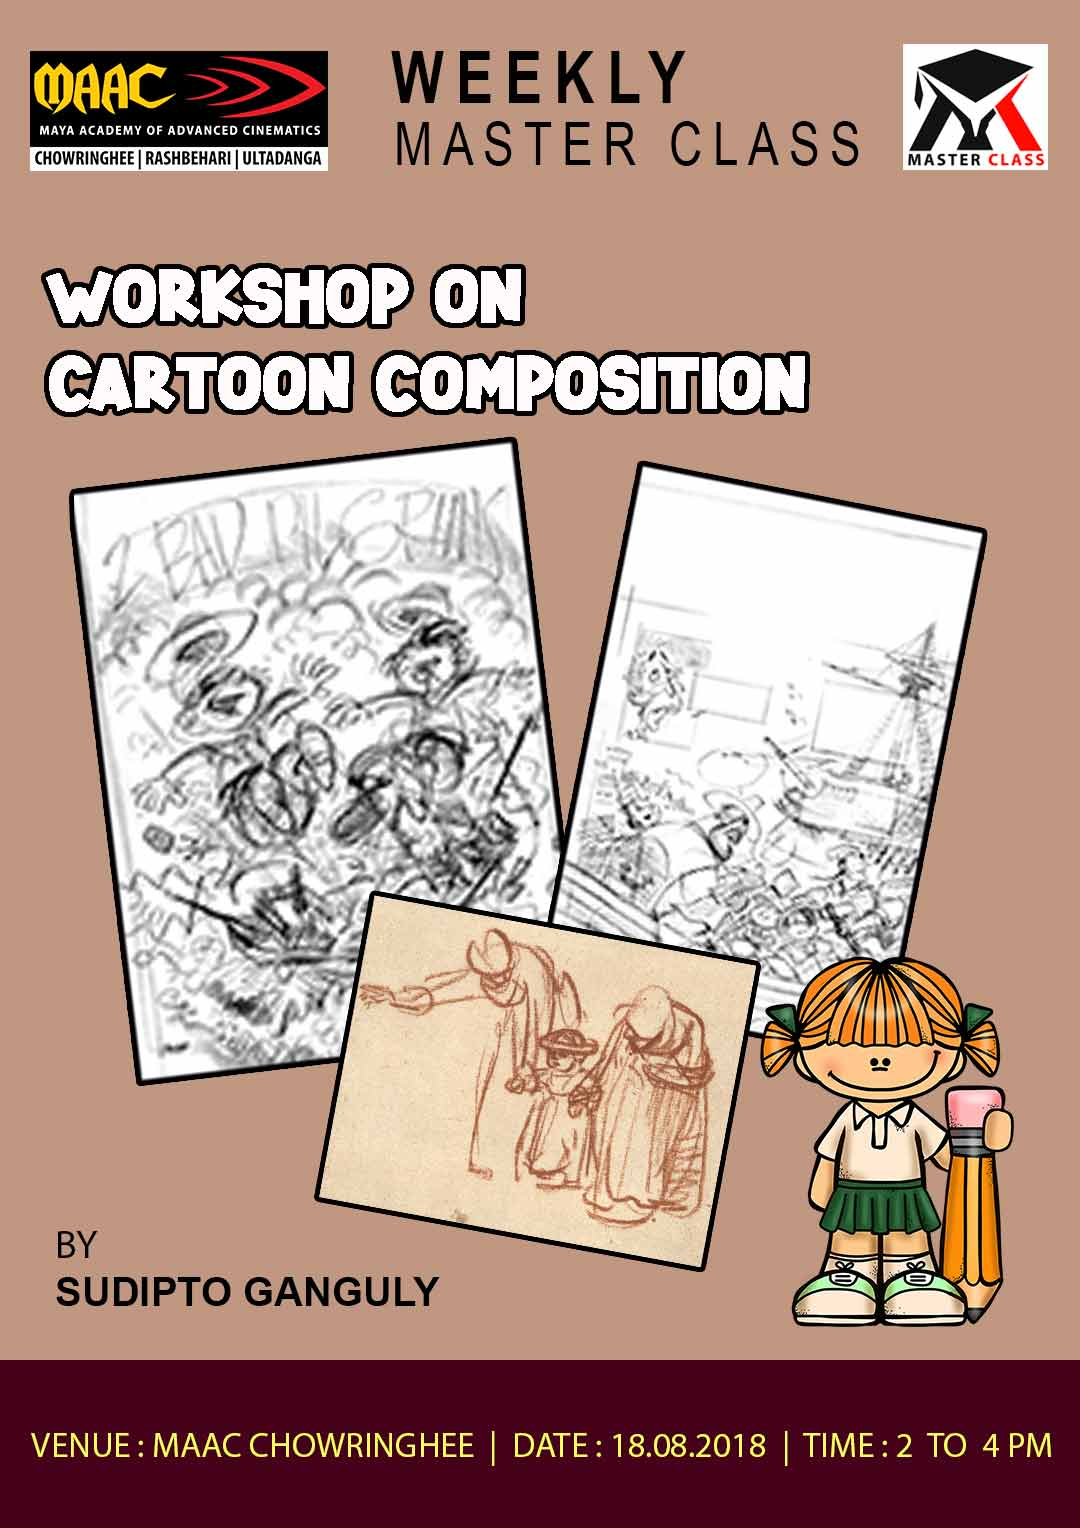 Weekly Master Class on Workshop On Cartoon Composition